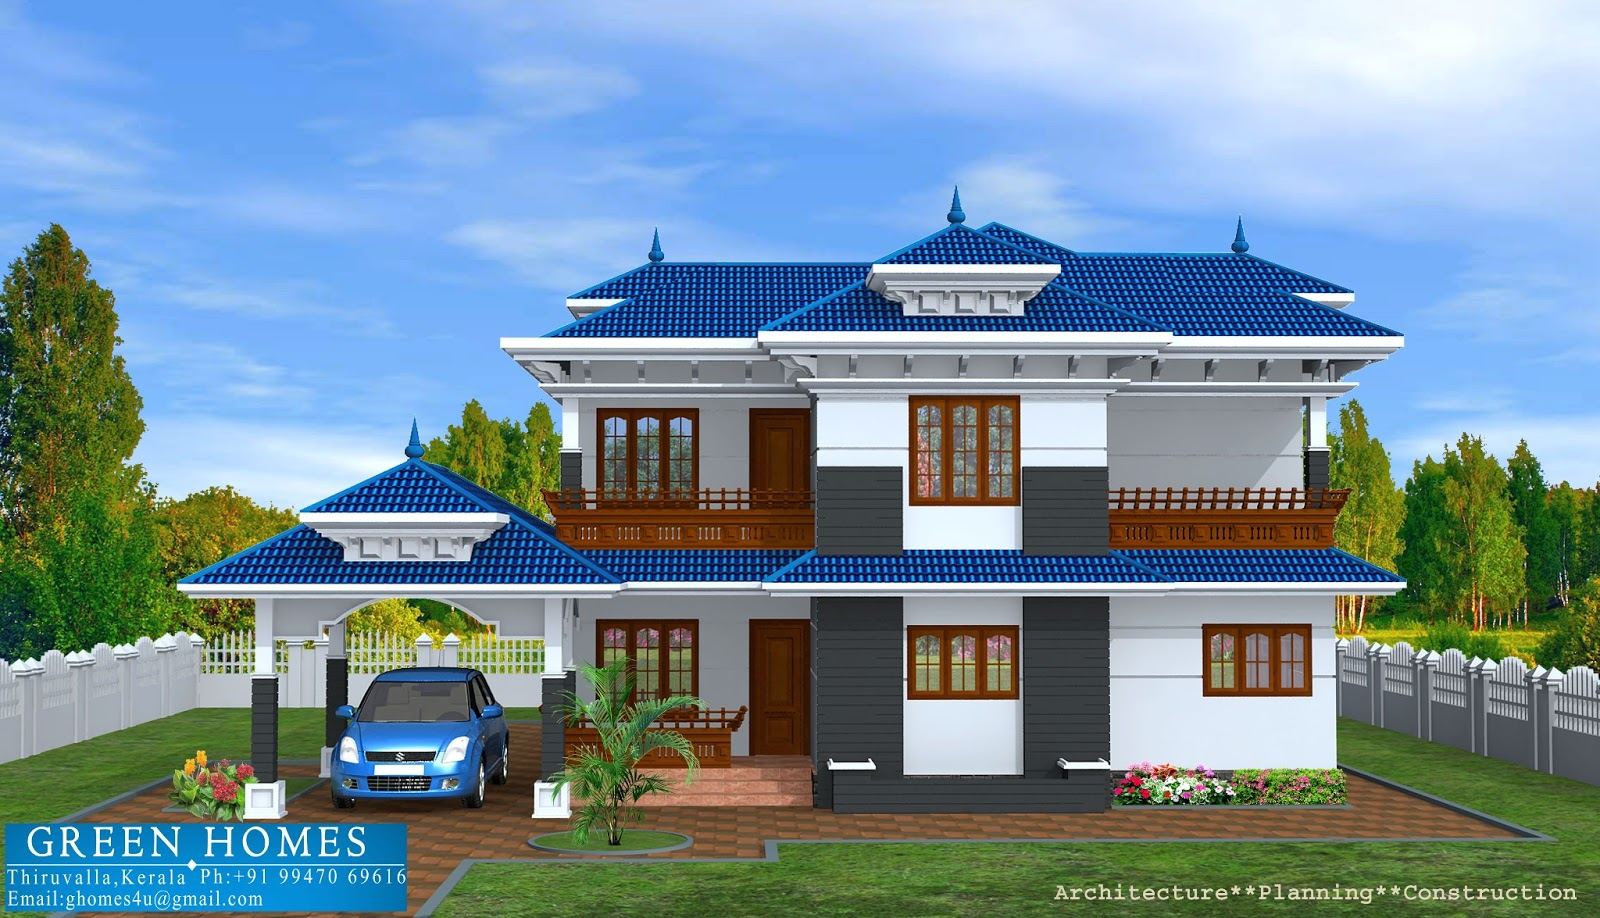 Green homes kerala model home in 2400 sq feet for Home models in kerala